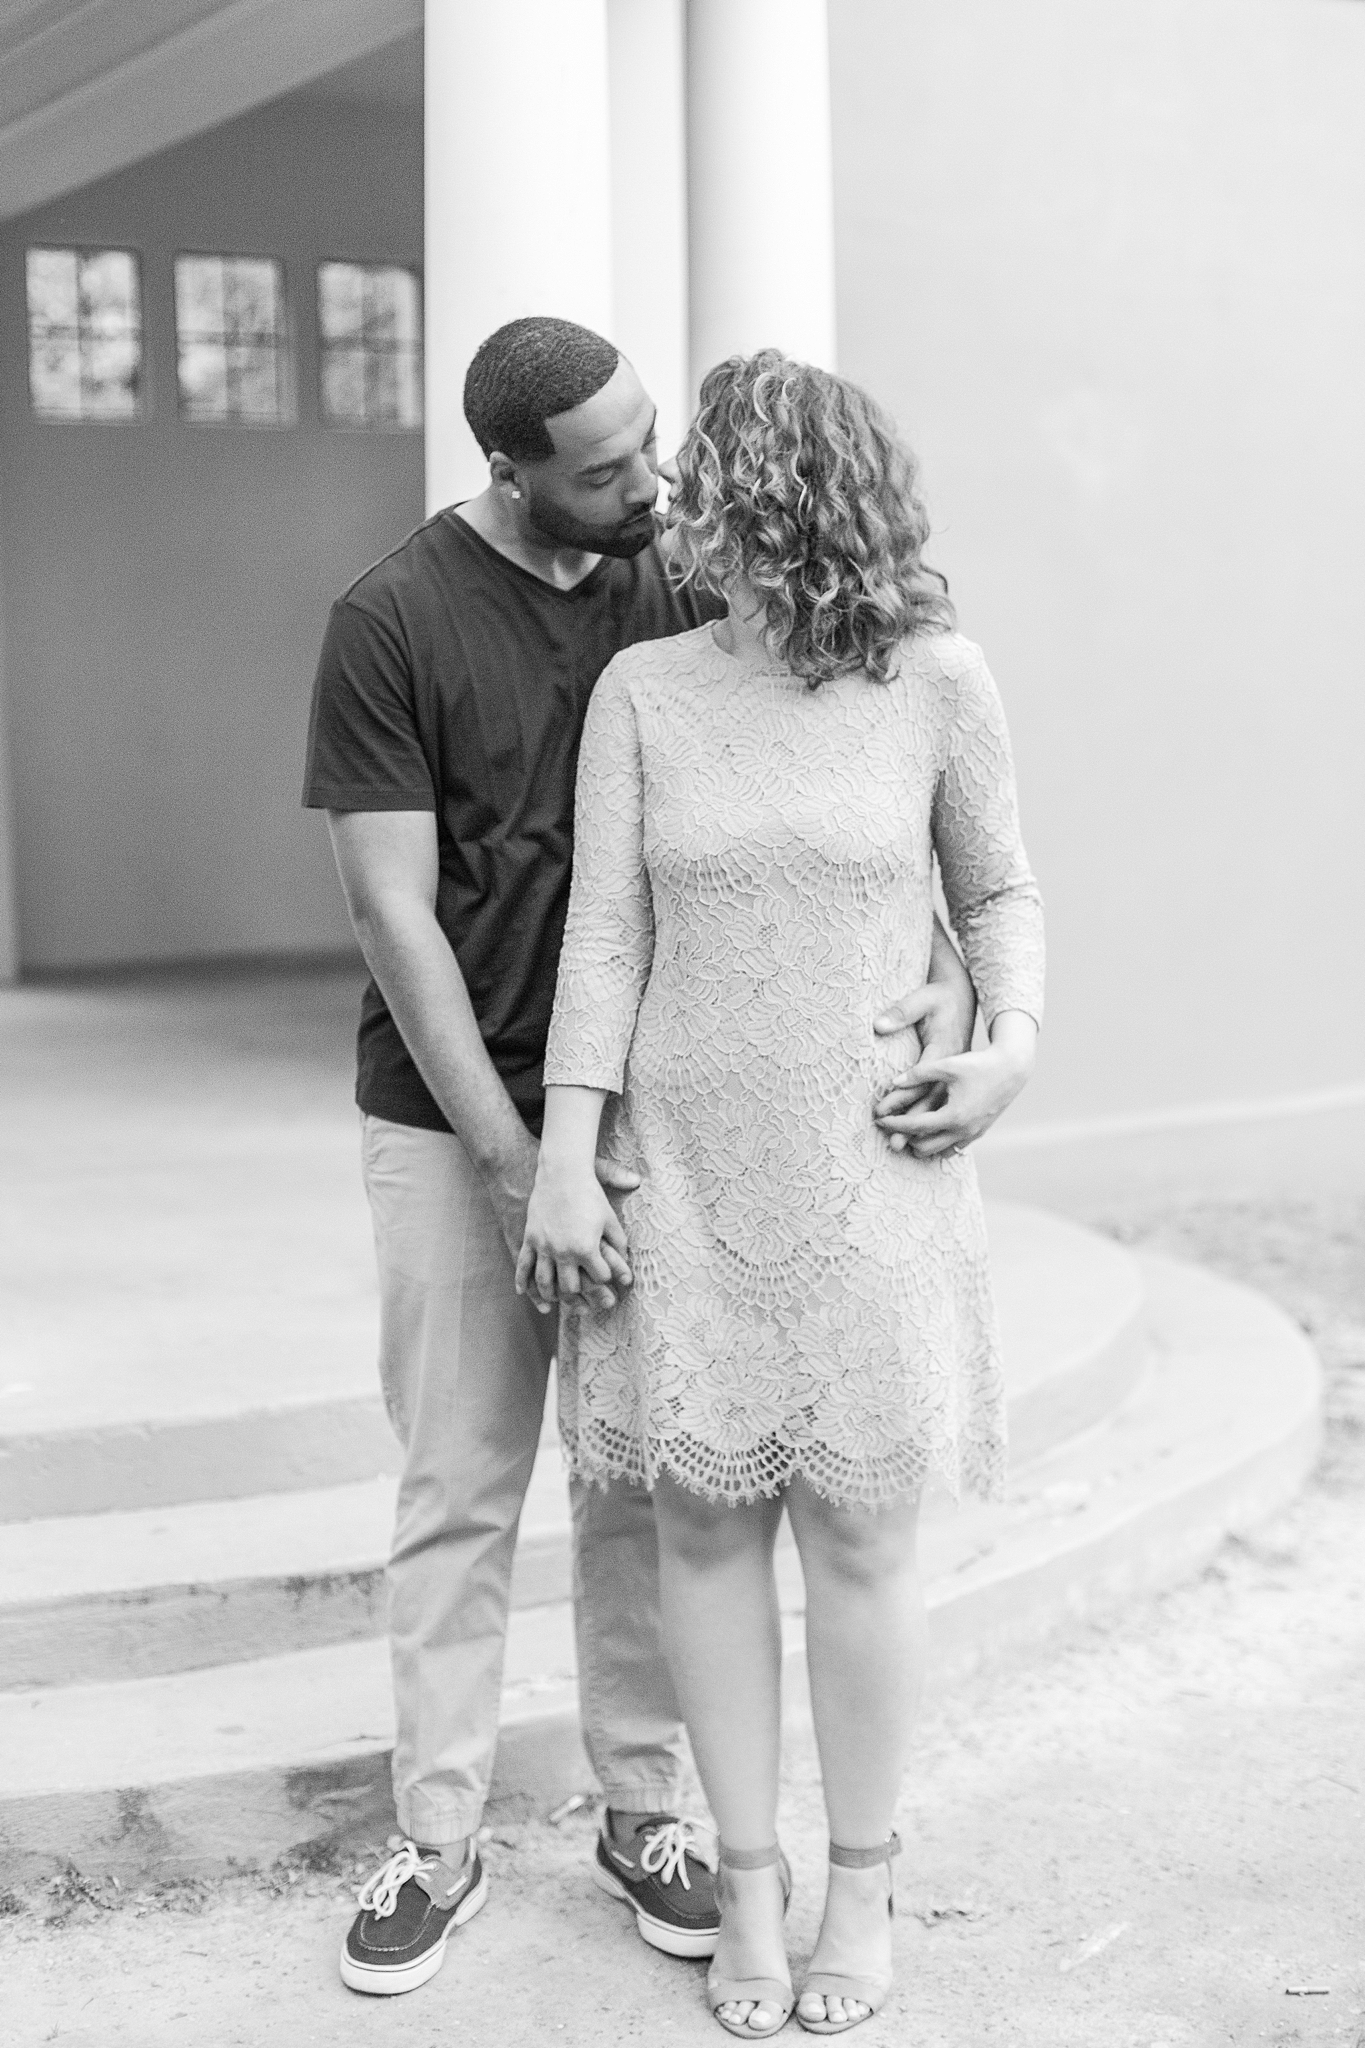 joyful-college-campus-engagement-photography-at-university-of-michigan-in-ann-arbor-mi-by-courtney-carolyn-photography_0026.jpg